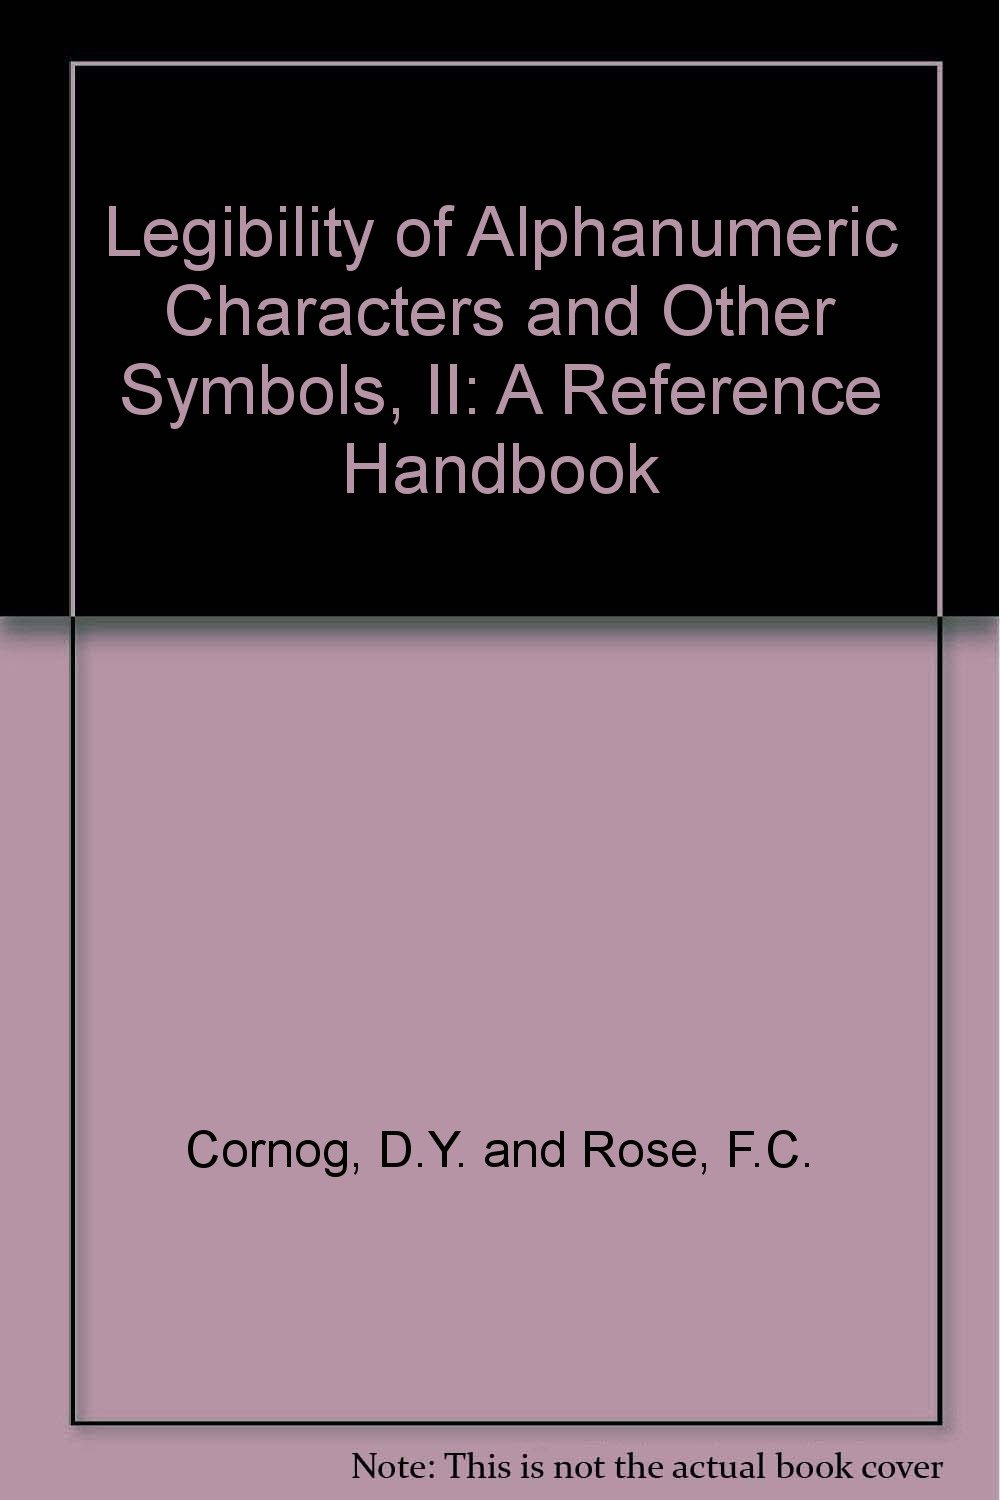 Legibility Of Alphanumeric Characters And Other Symbols Ii A